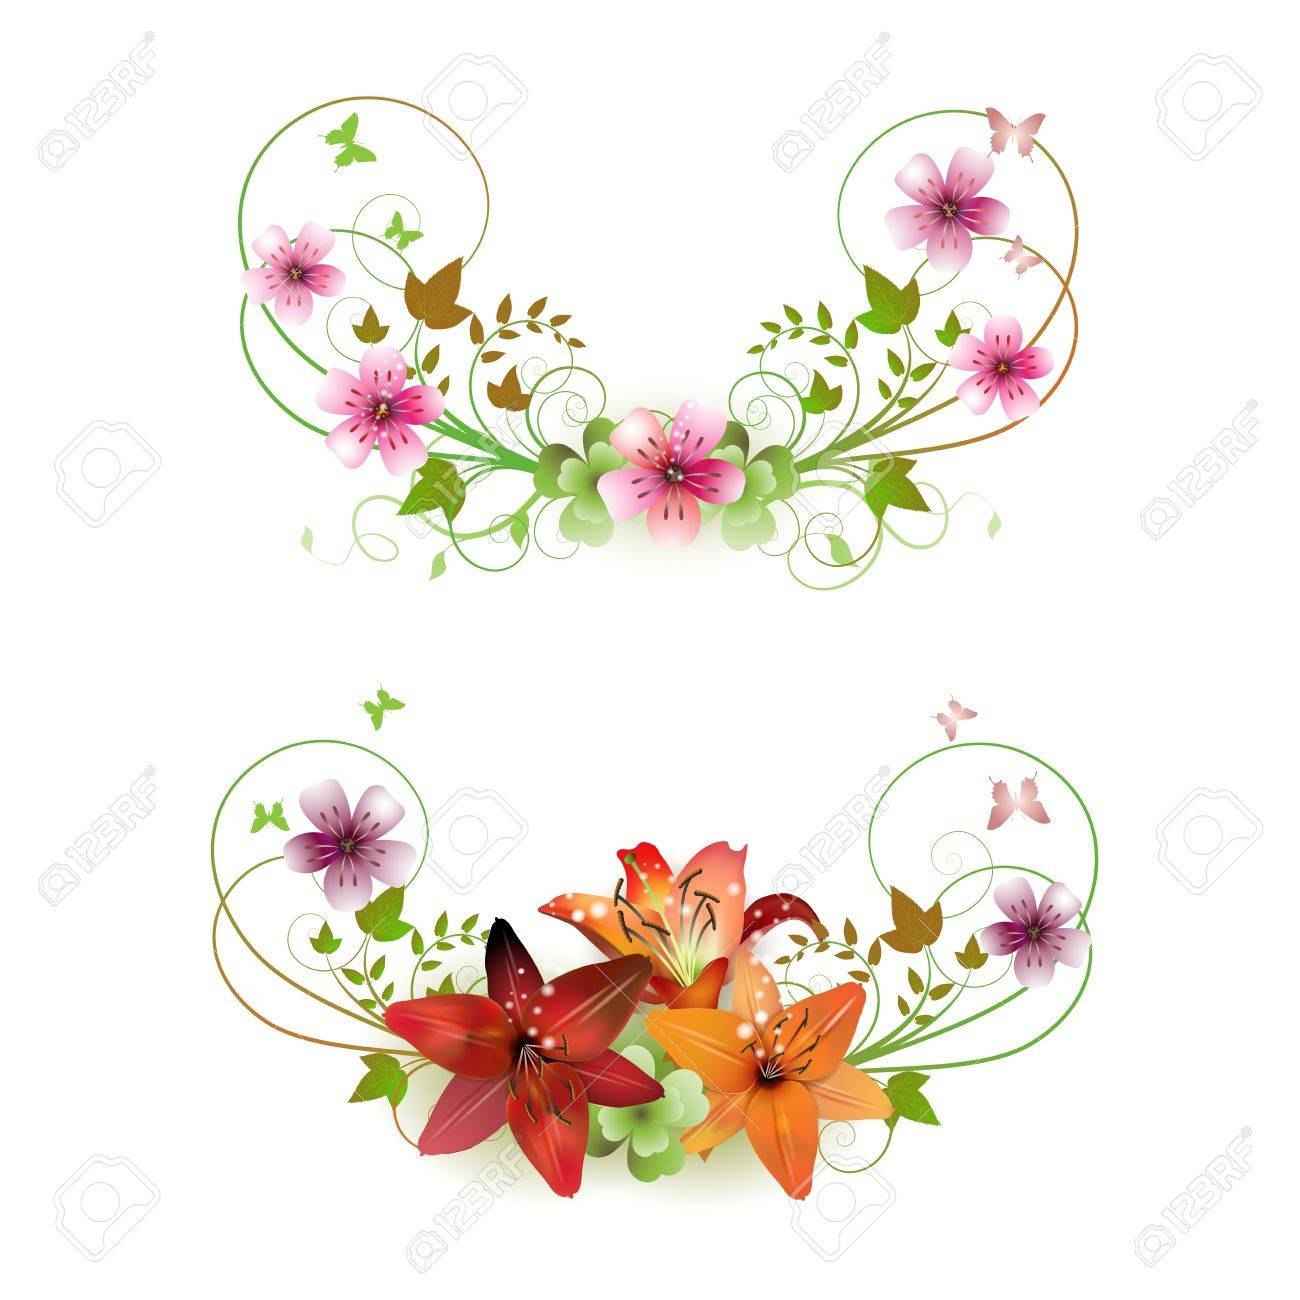 Flowers arrangement and butterflies lilies of different colors flowers arrangement and butterflies lilies of different colors stock vector 9100410 dhlflorist Choice Image